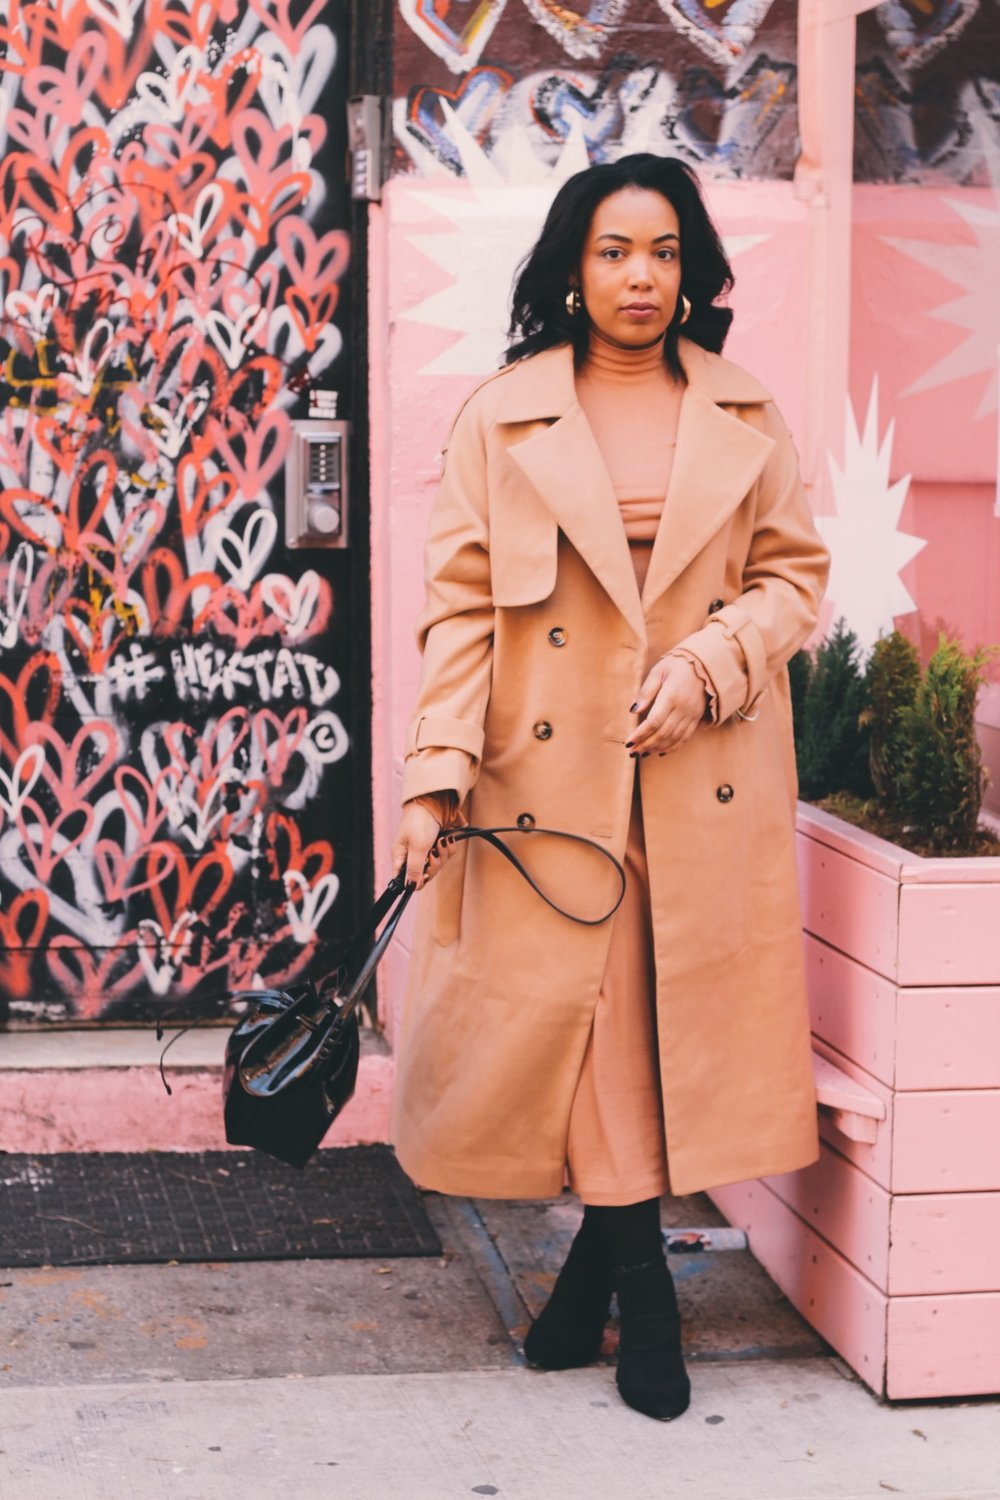 Soho-NYC-Cafe-integral-egg-shop-asos-trench-turtleneck-maxi-dress-hue-tights-patent-bucket-bag-17.JPG